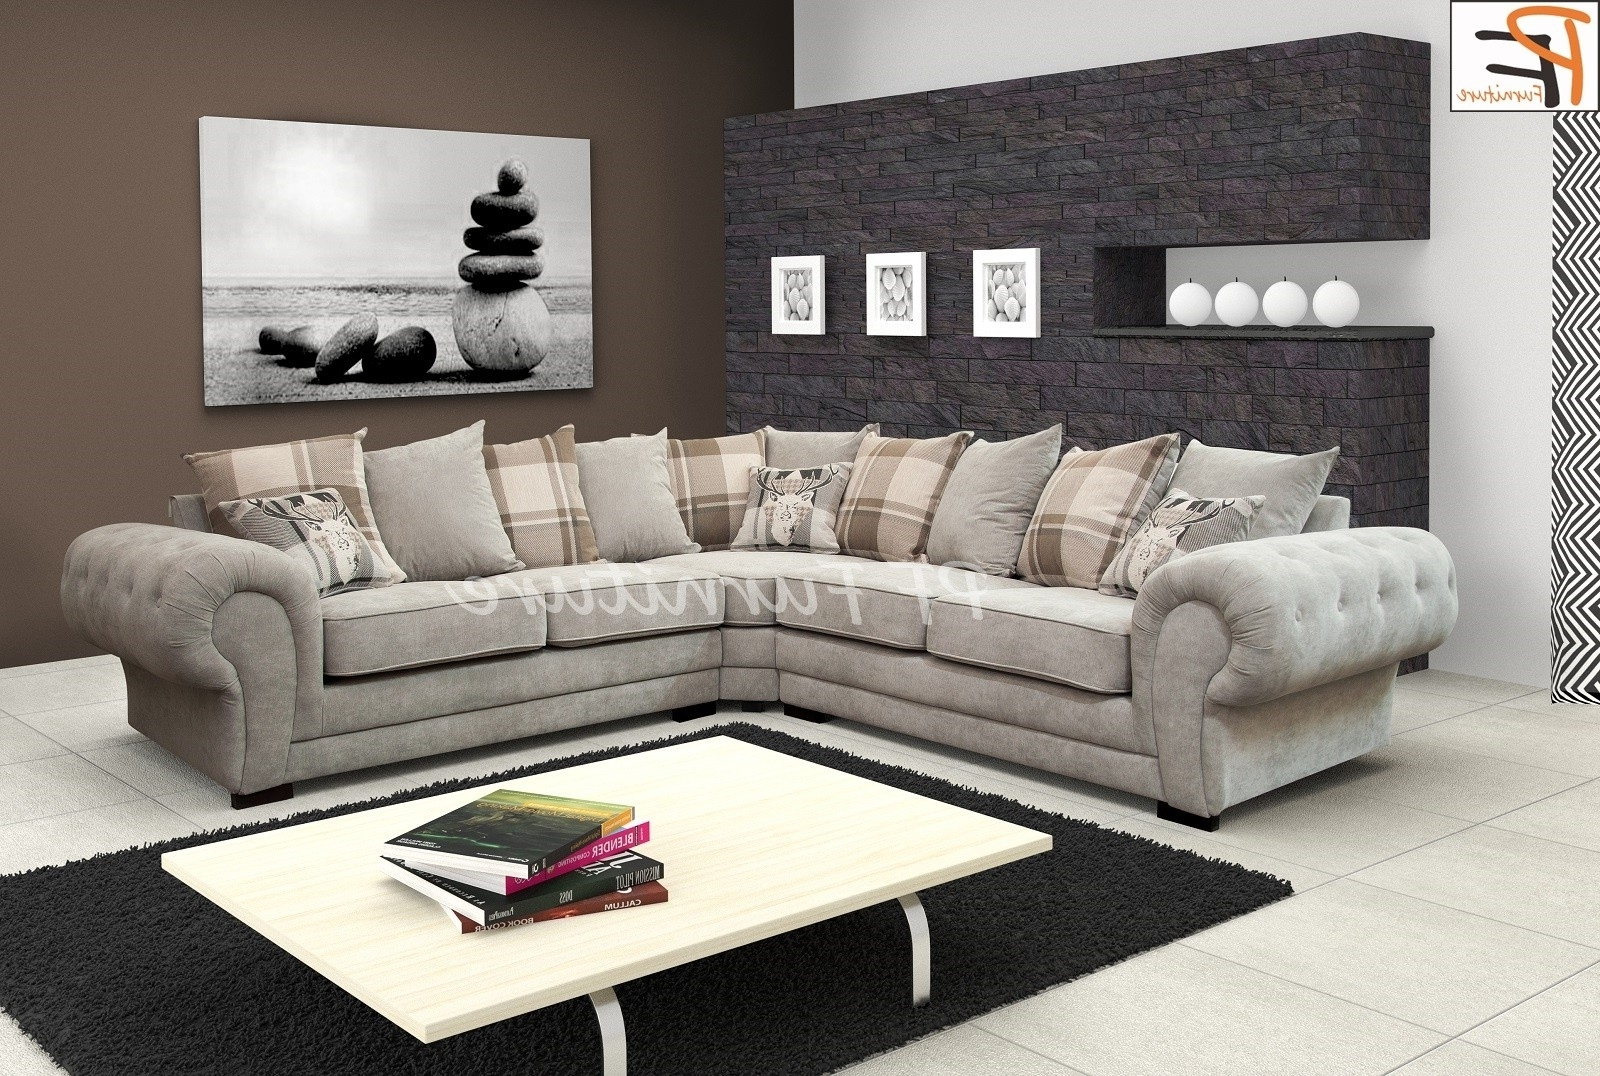 2019 How To Decorate Your Living Room With Fabric Corner Sofa Pertaining To Fabric Corner Sofas (View 2 of 20)